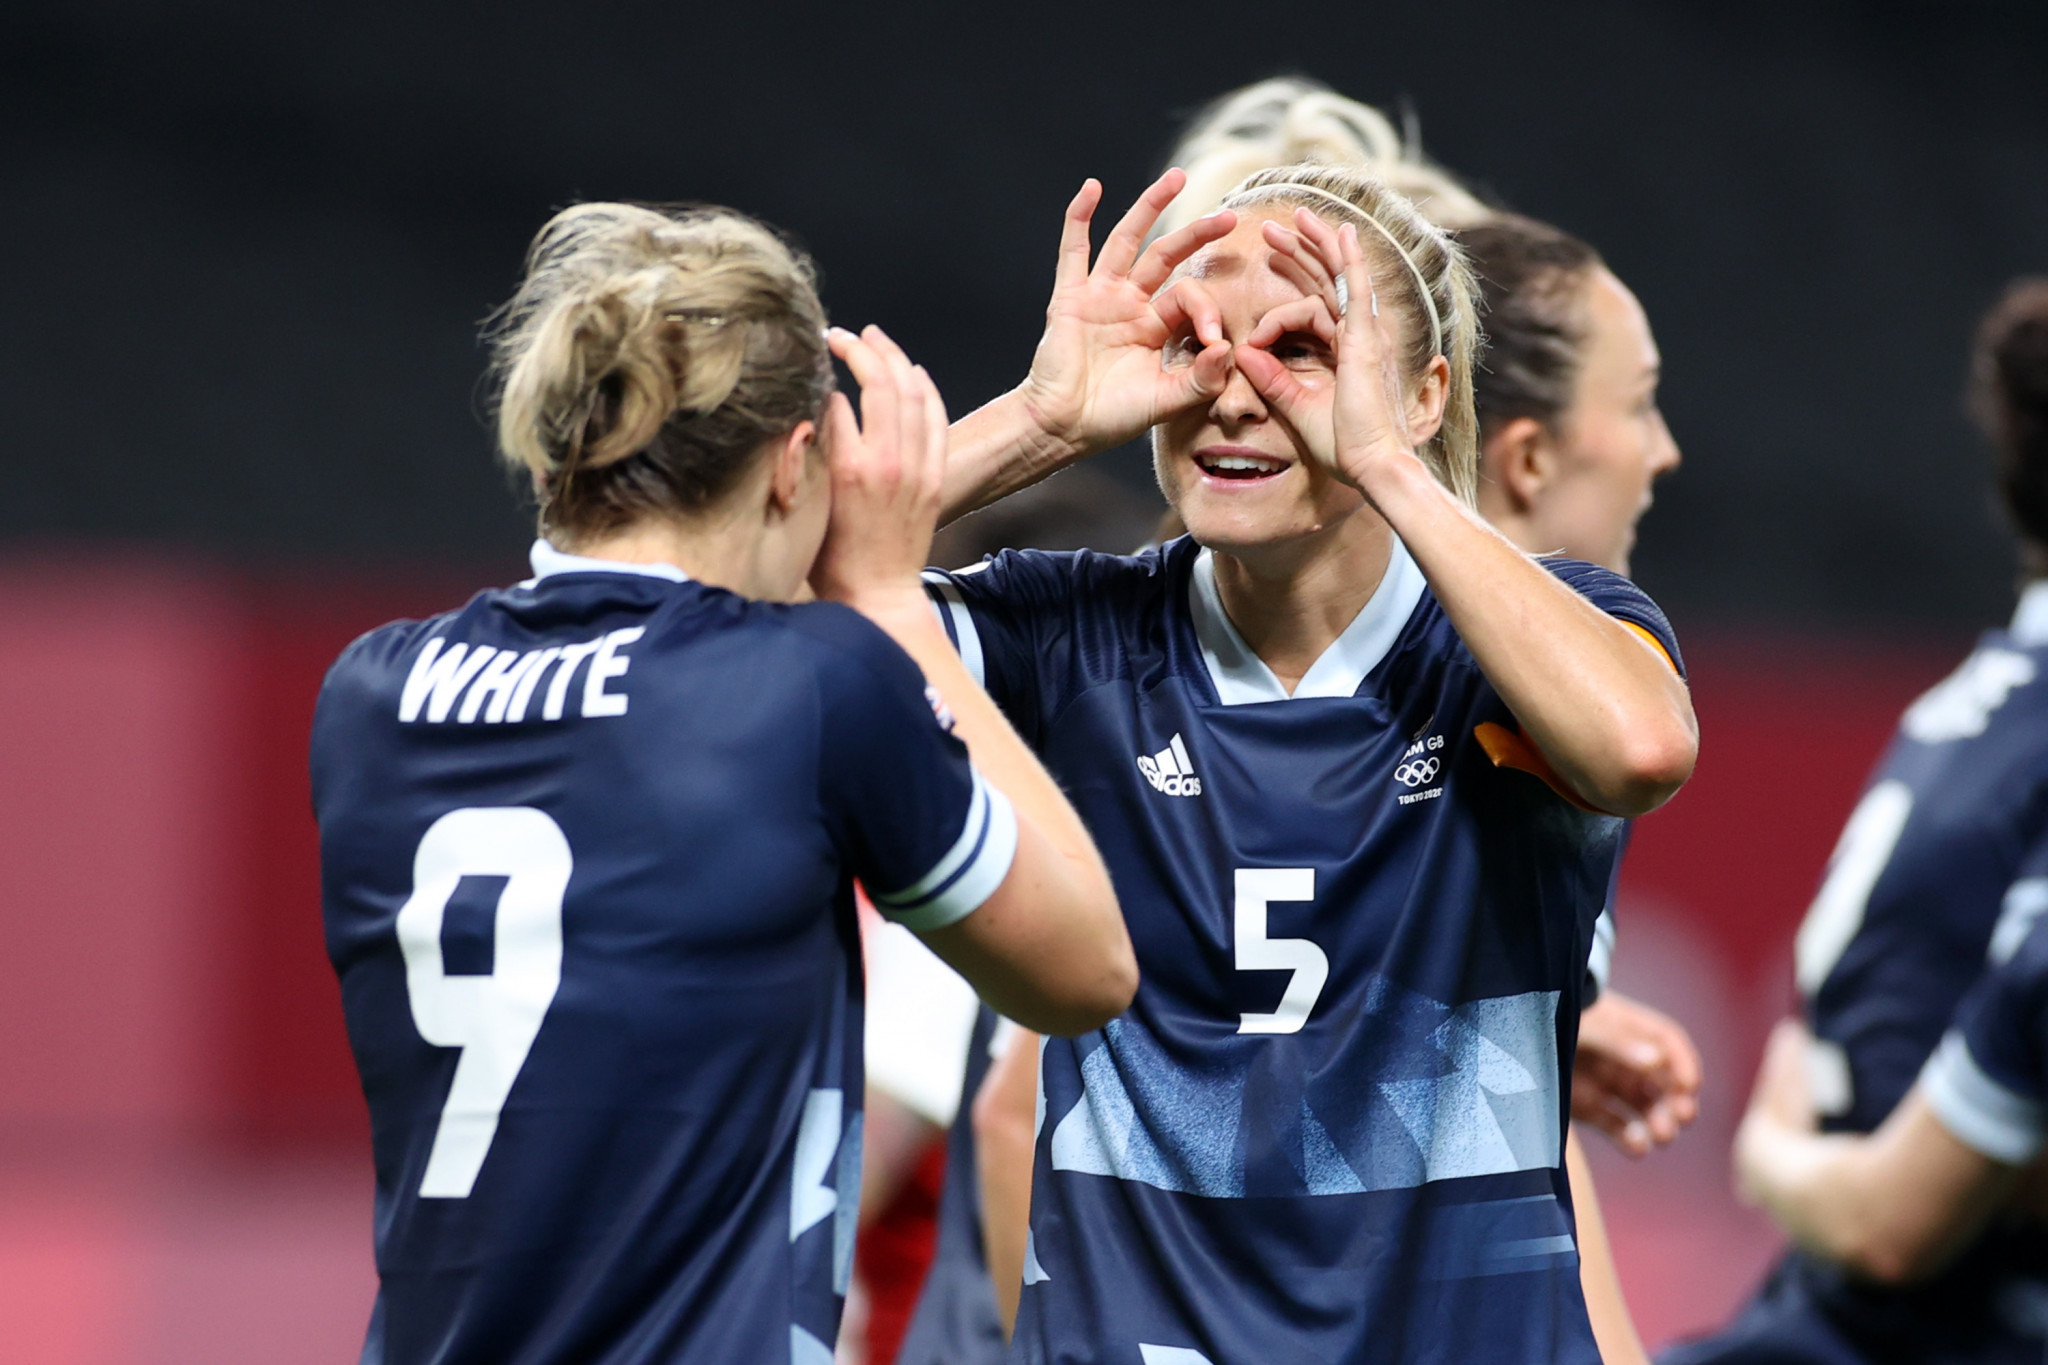 Britain's Ellen White scored twice as her side beat the Chileans 2-0 ©Getty Images